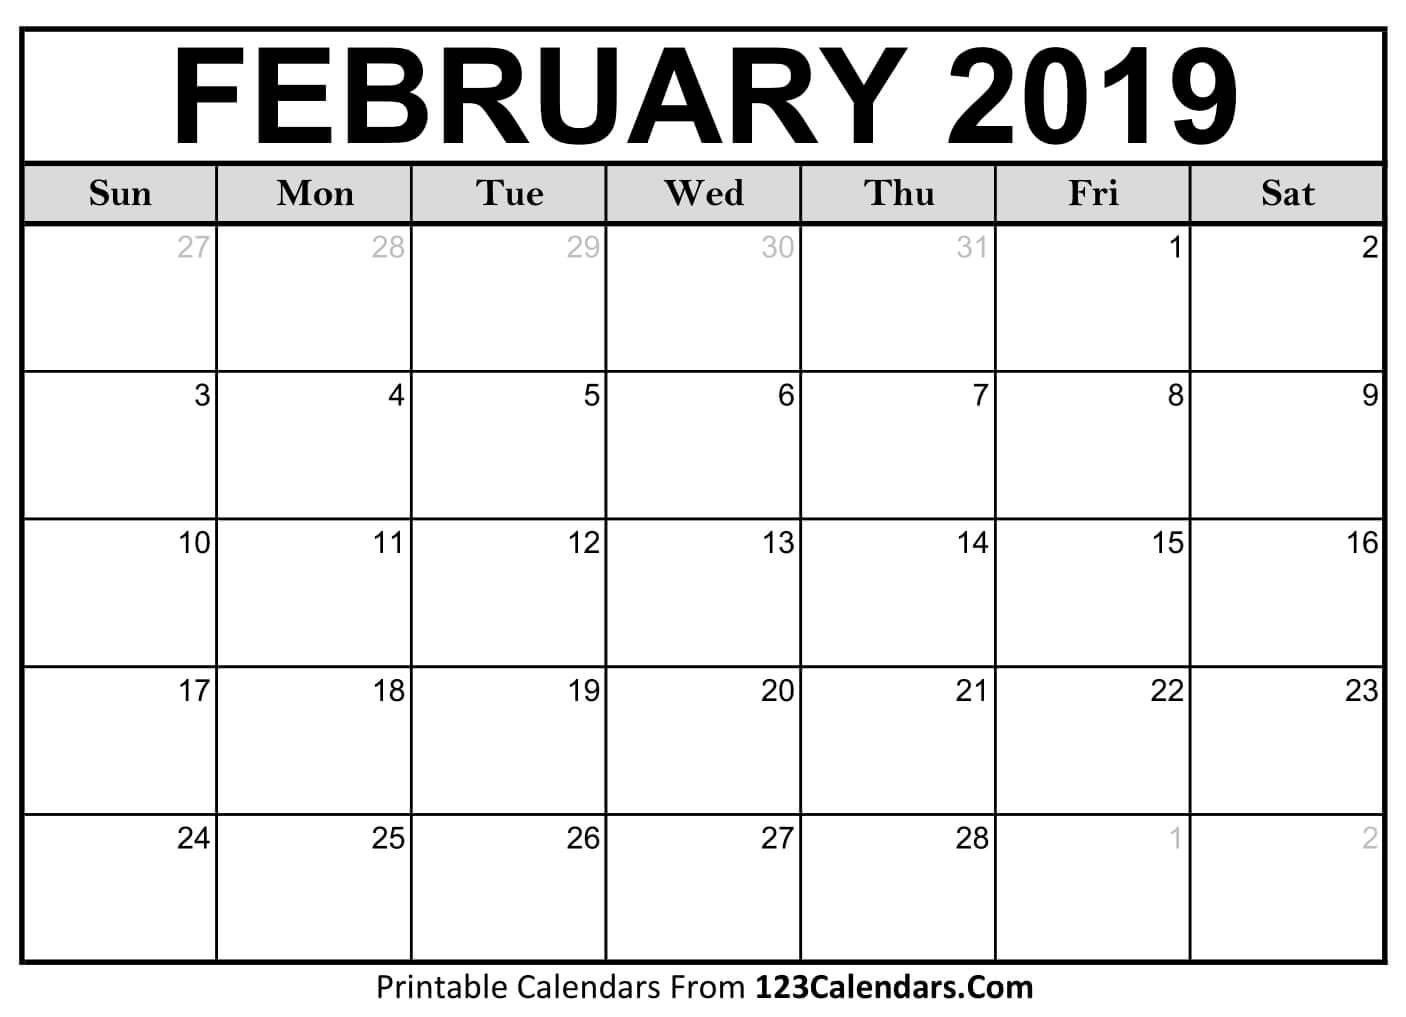 Printable February 2019 Calendar Templates – 123Calendars A Calendar For February 2019